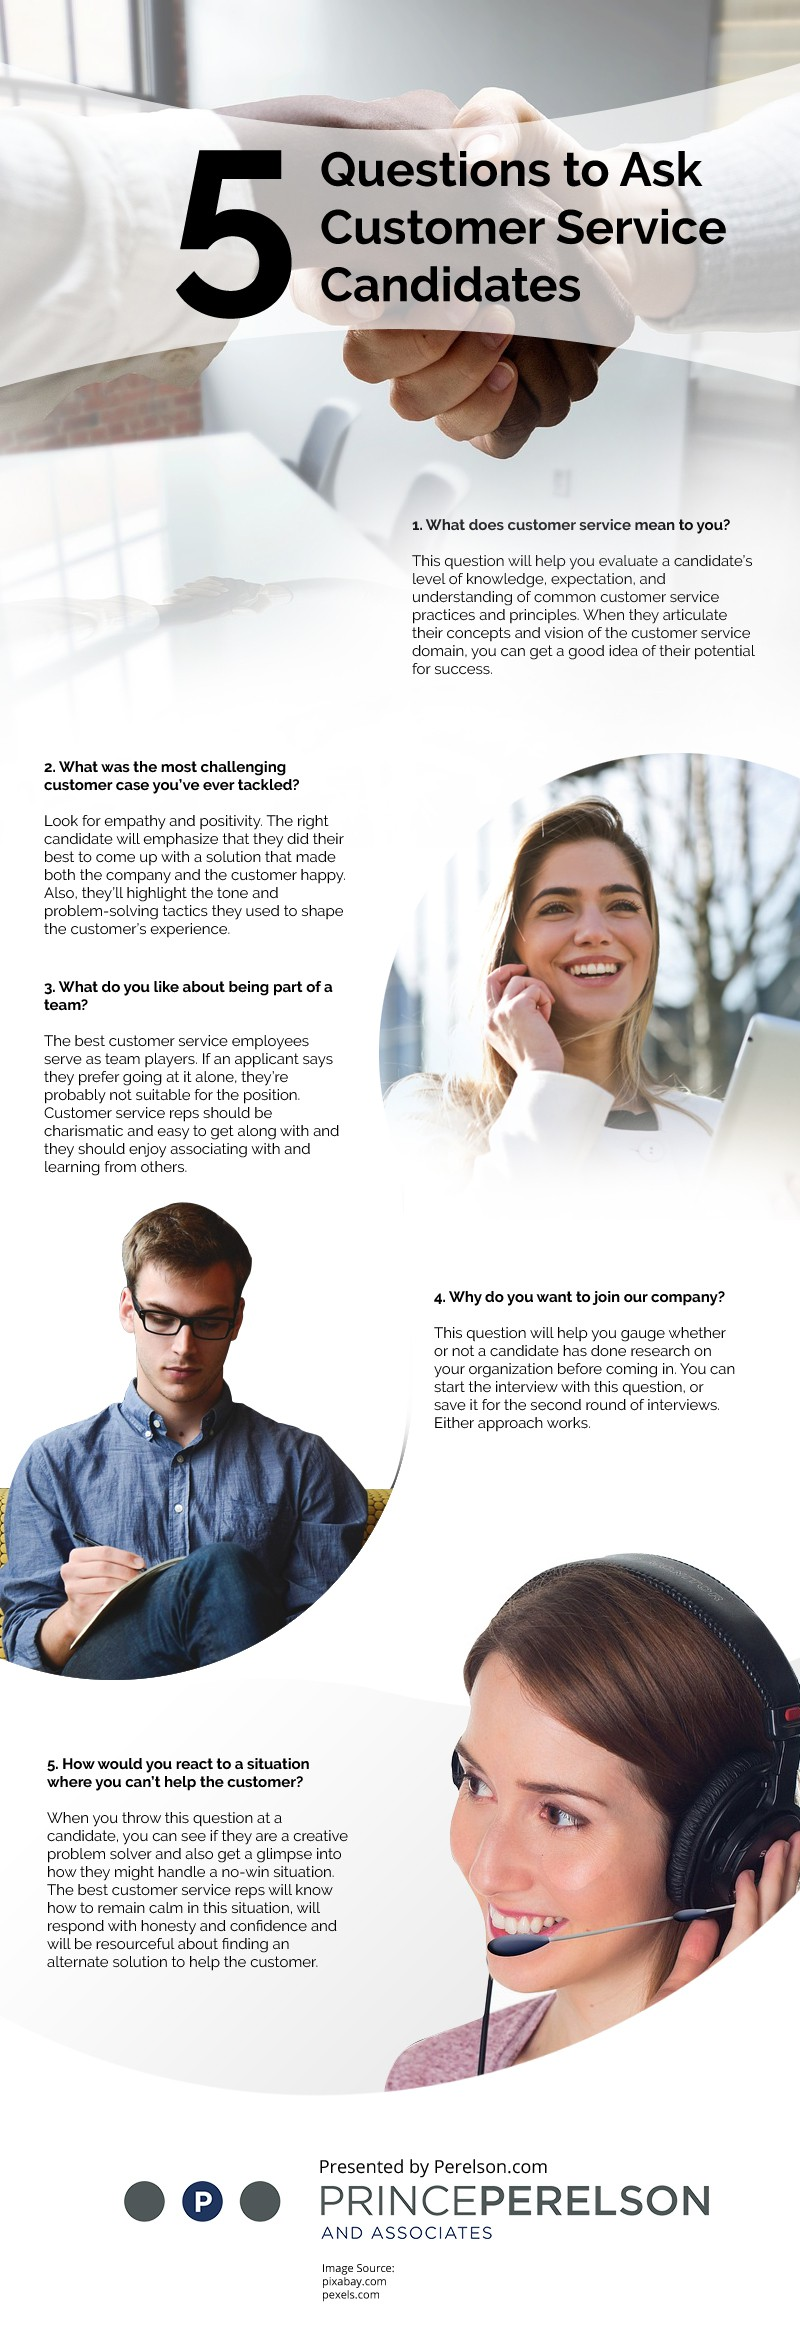 5 Questions to Ask Customer Service Candidates [infographic]